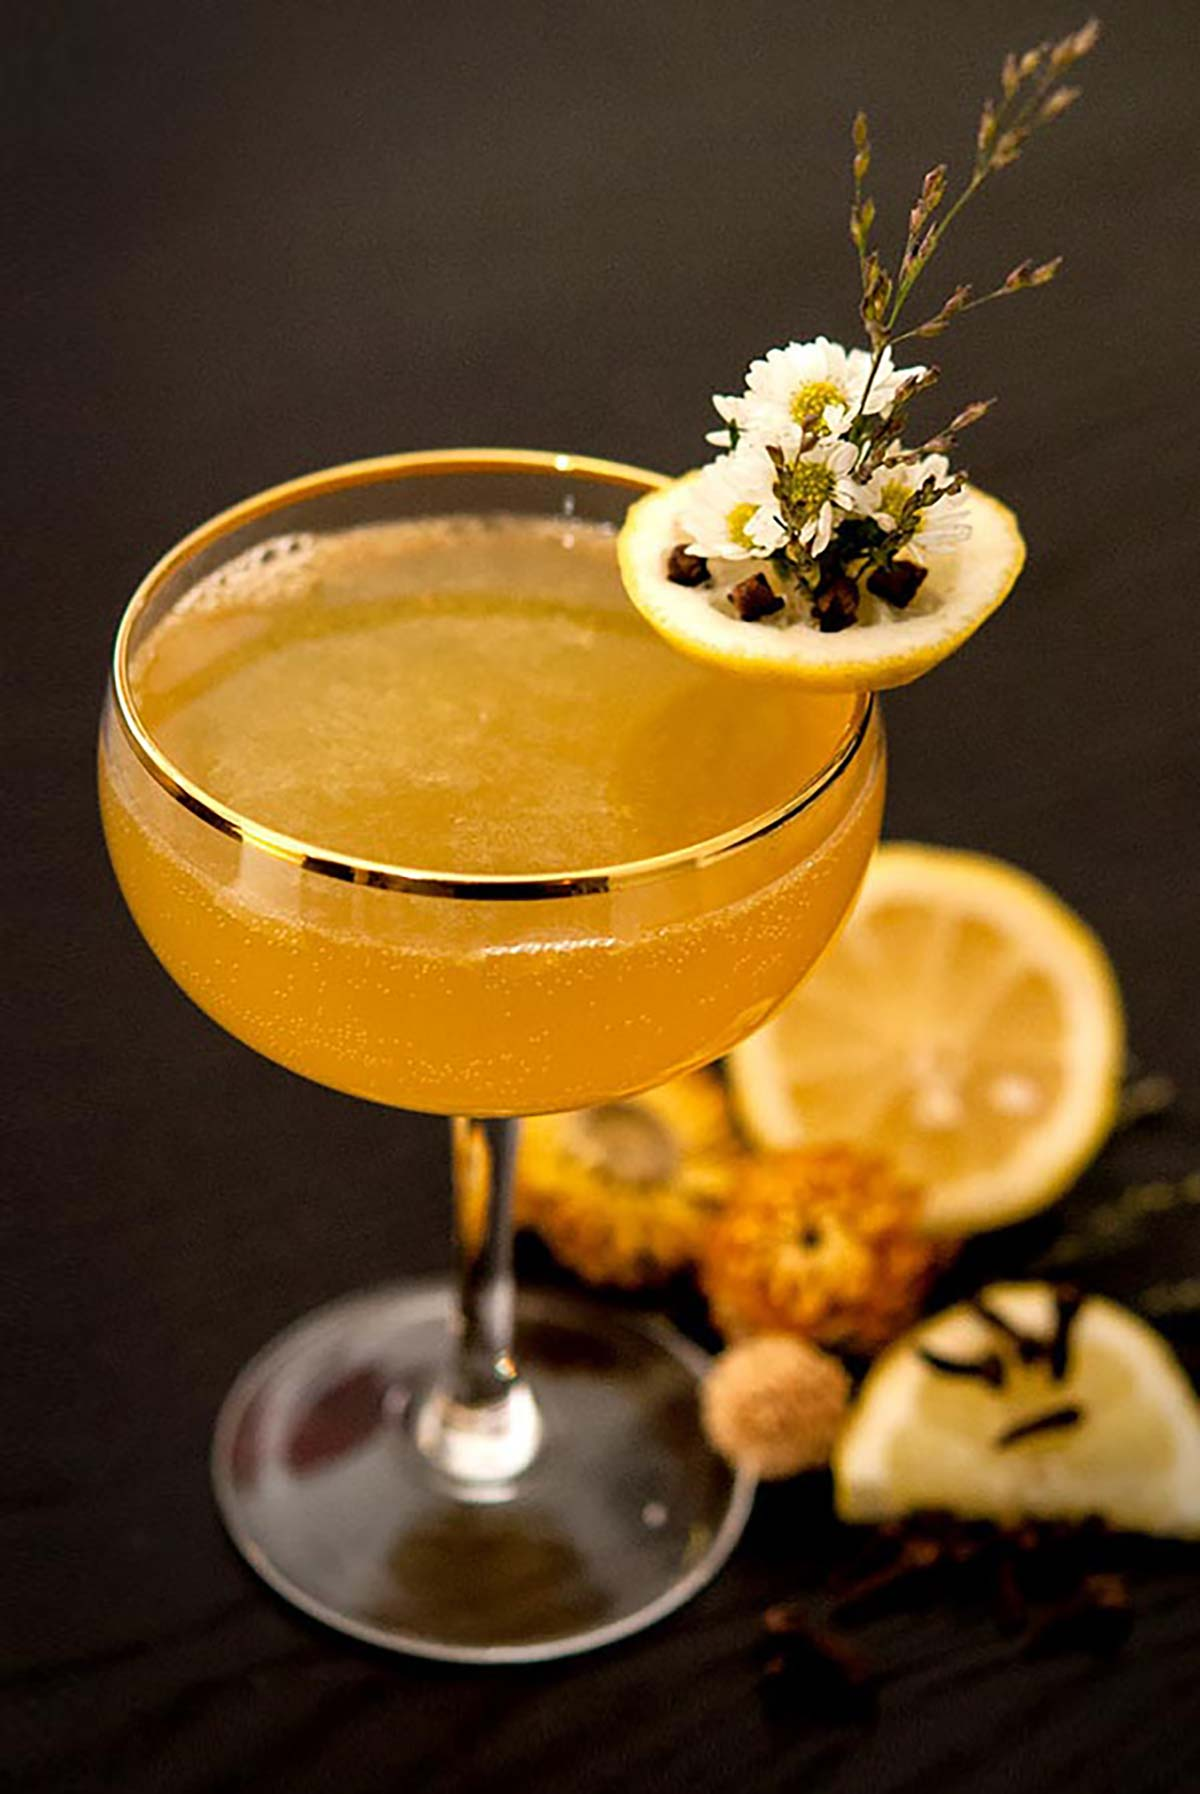 A cocktail garnished with daisies, lemon and cloves, sitting on a black table with sliced lemons and dry flowers around it.